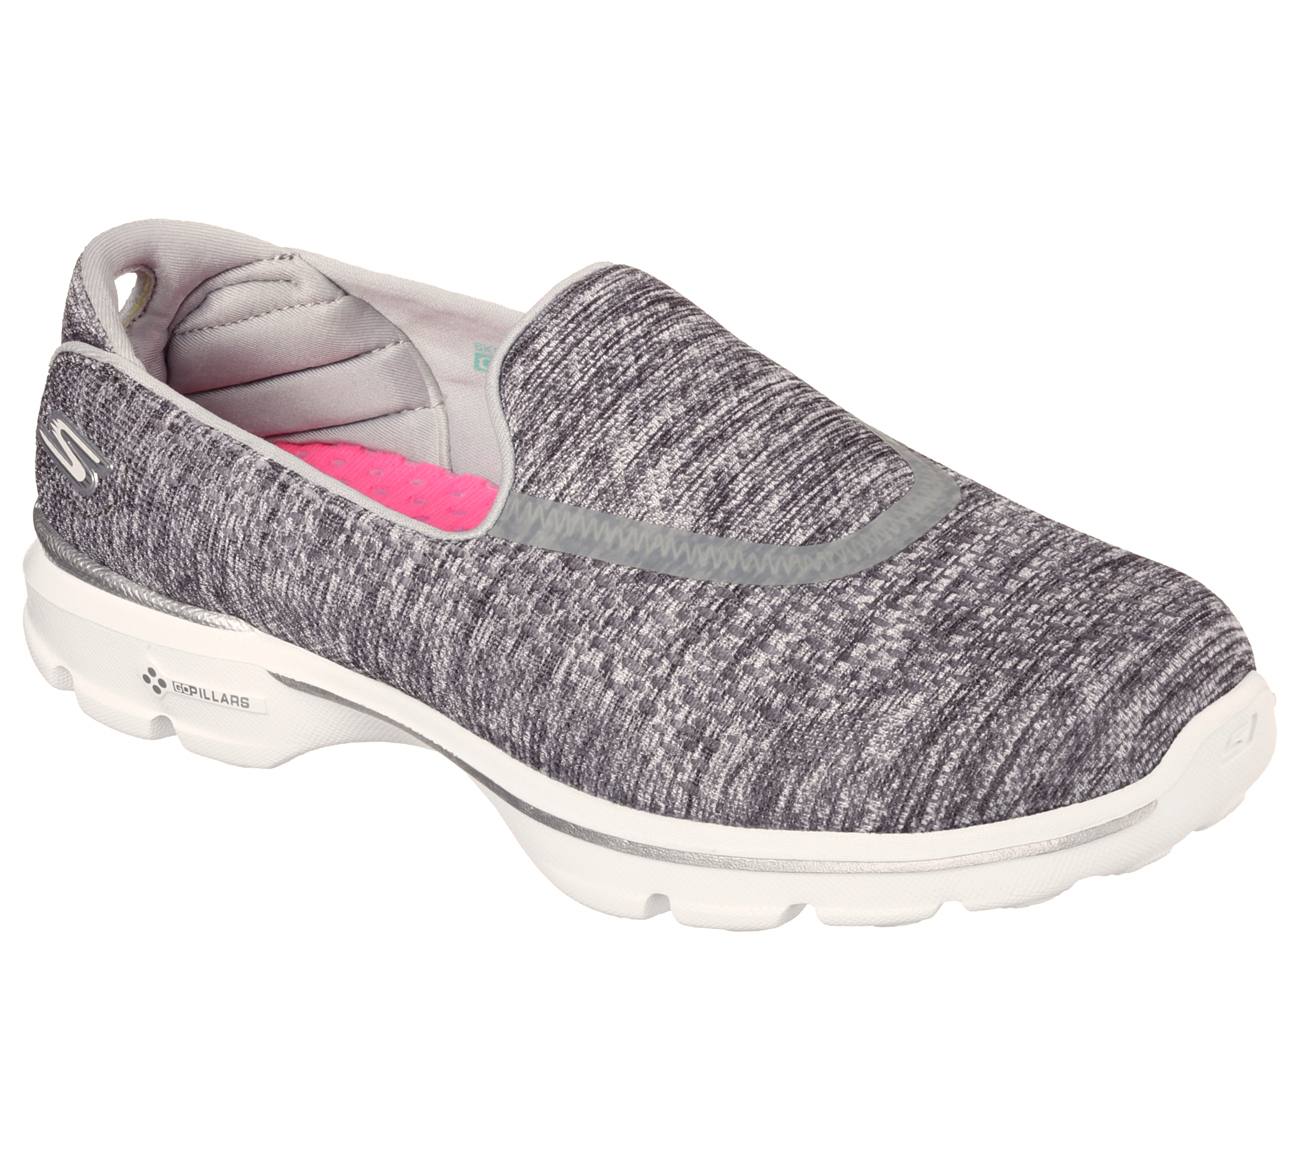 Creative Skechers  Shoes Boots  Women